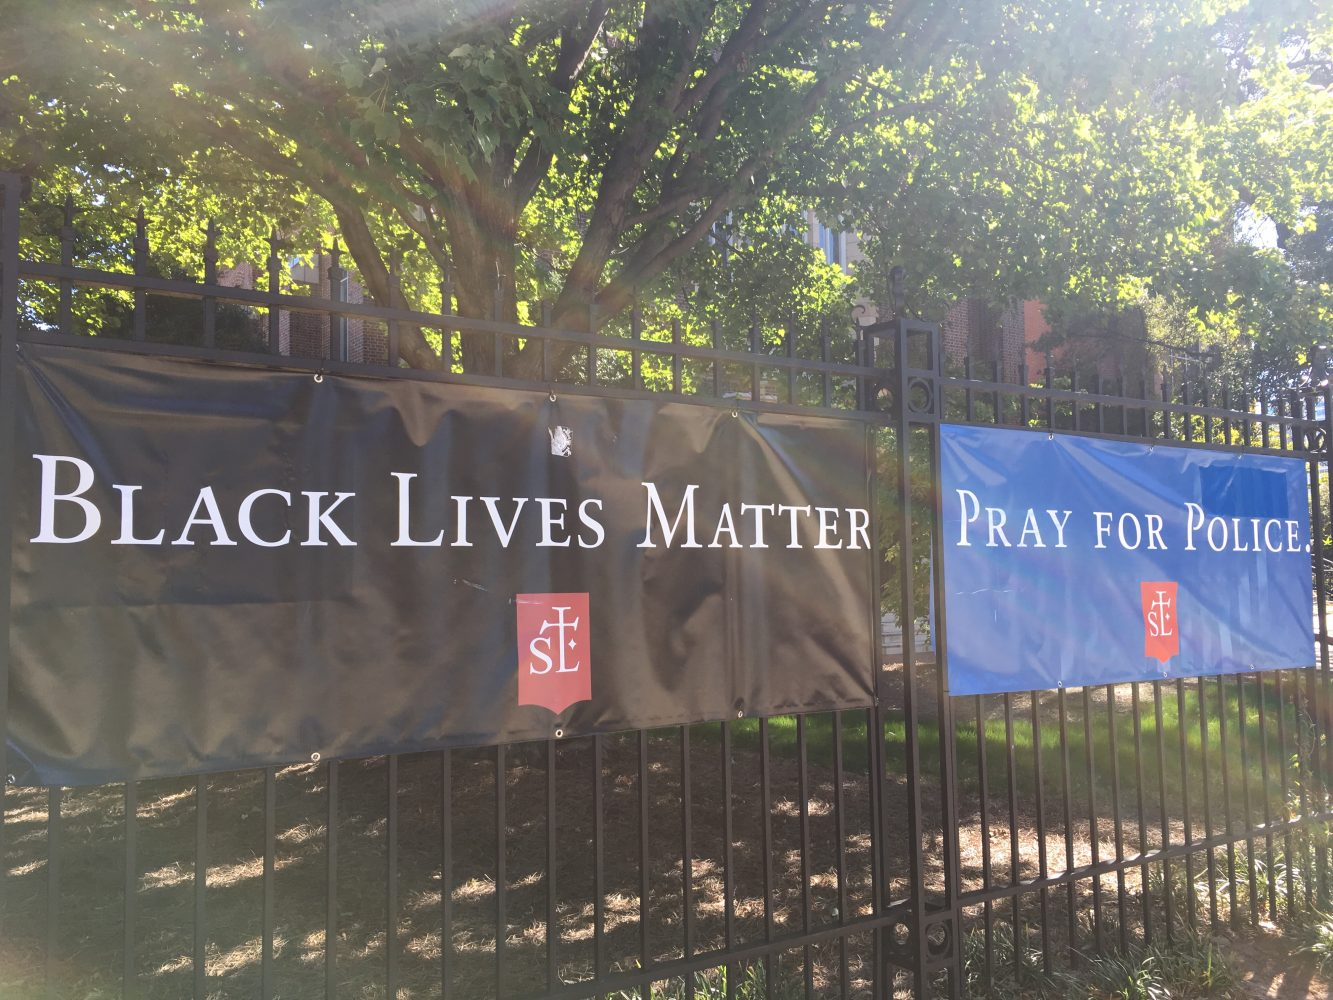 Churches+foster+BLM+movement%2C+fight+for+racial+equality